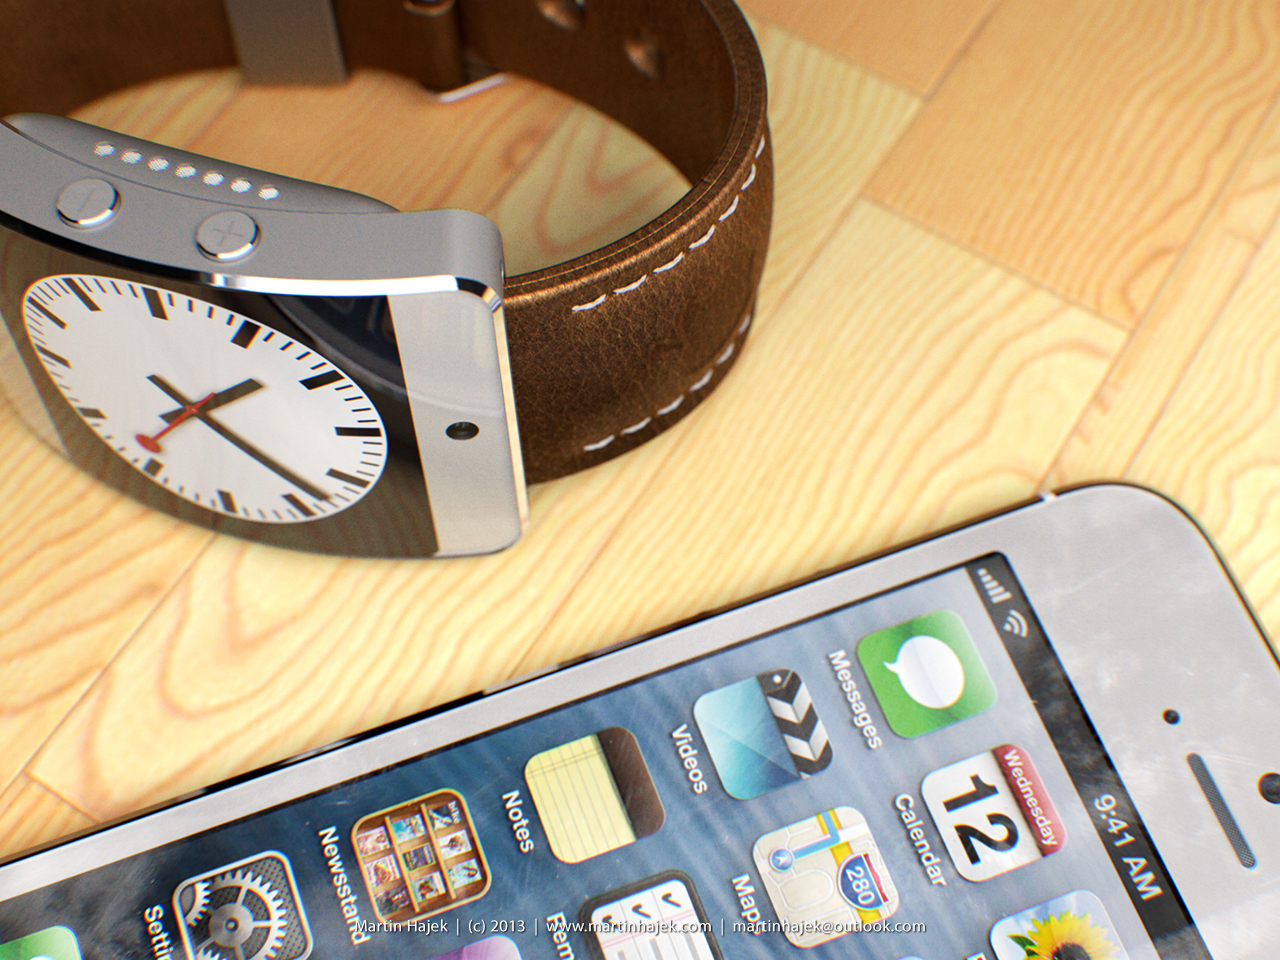 iWatch cocept (Martin Hajek, MacUser April 2013 issue 005)